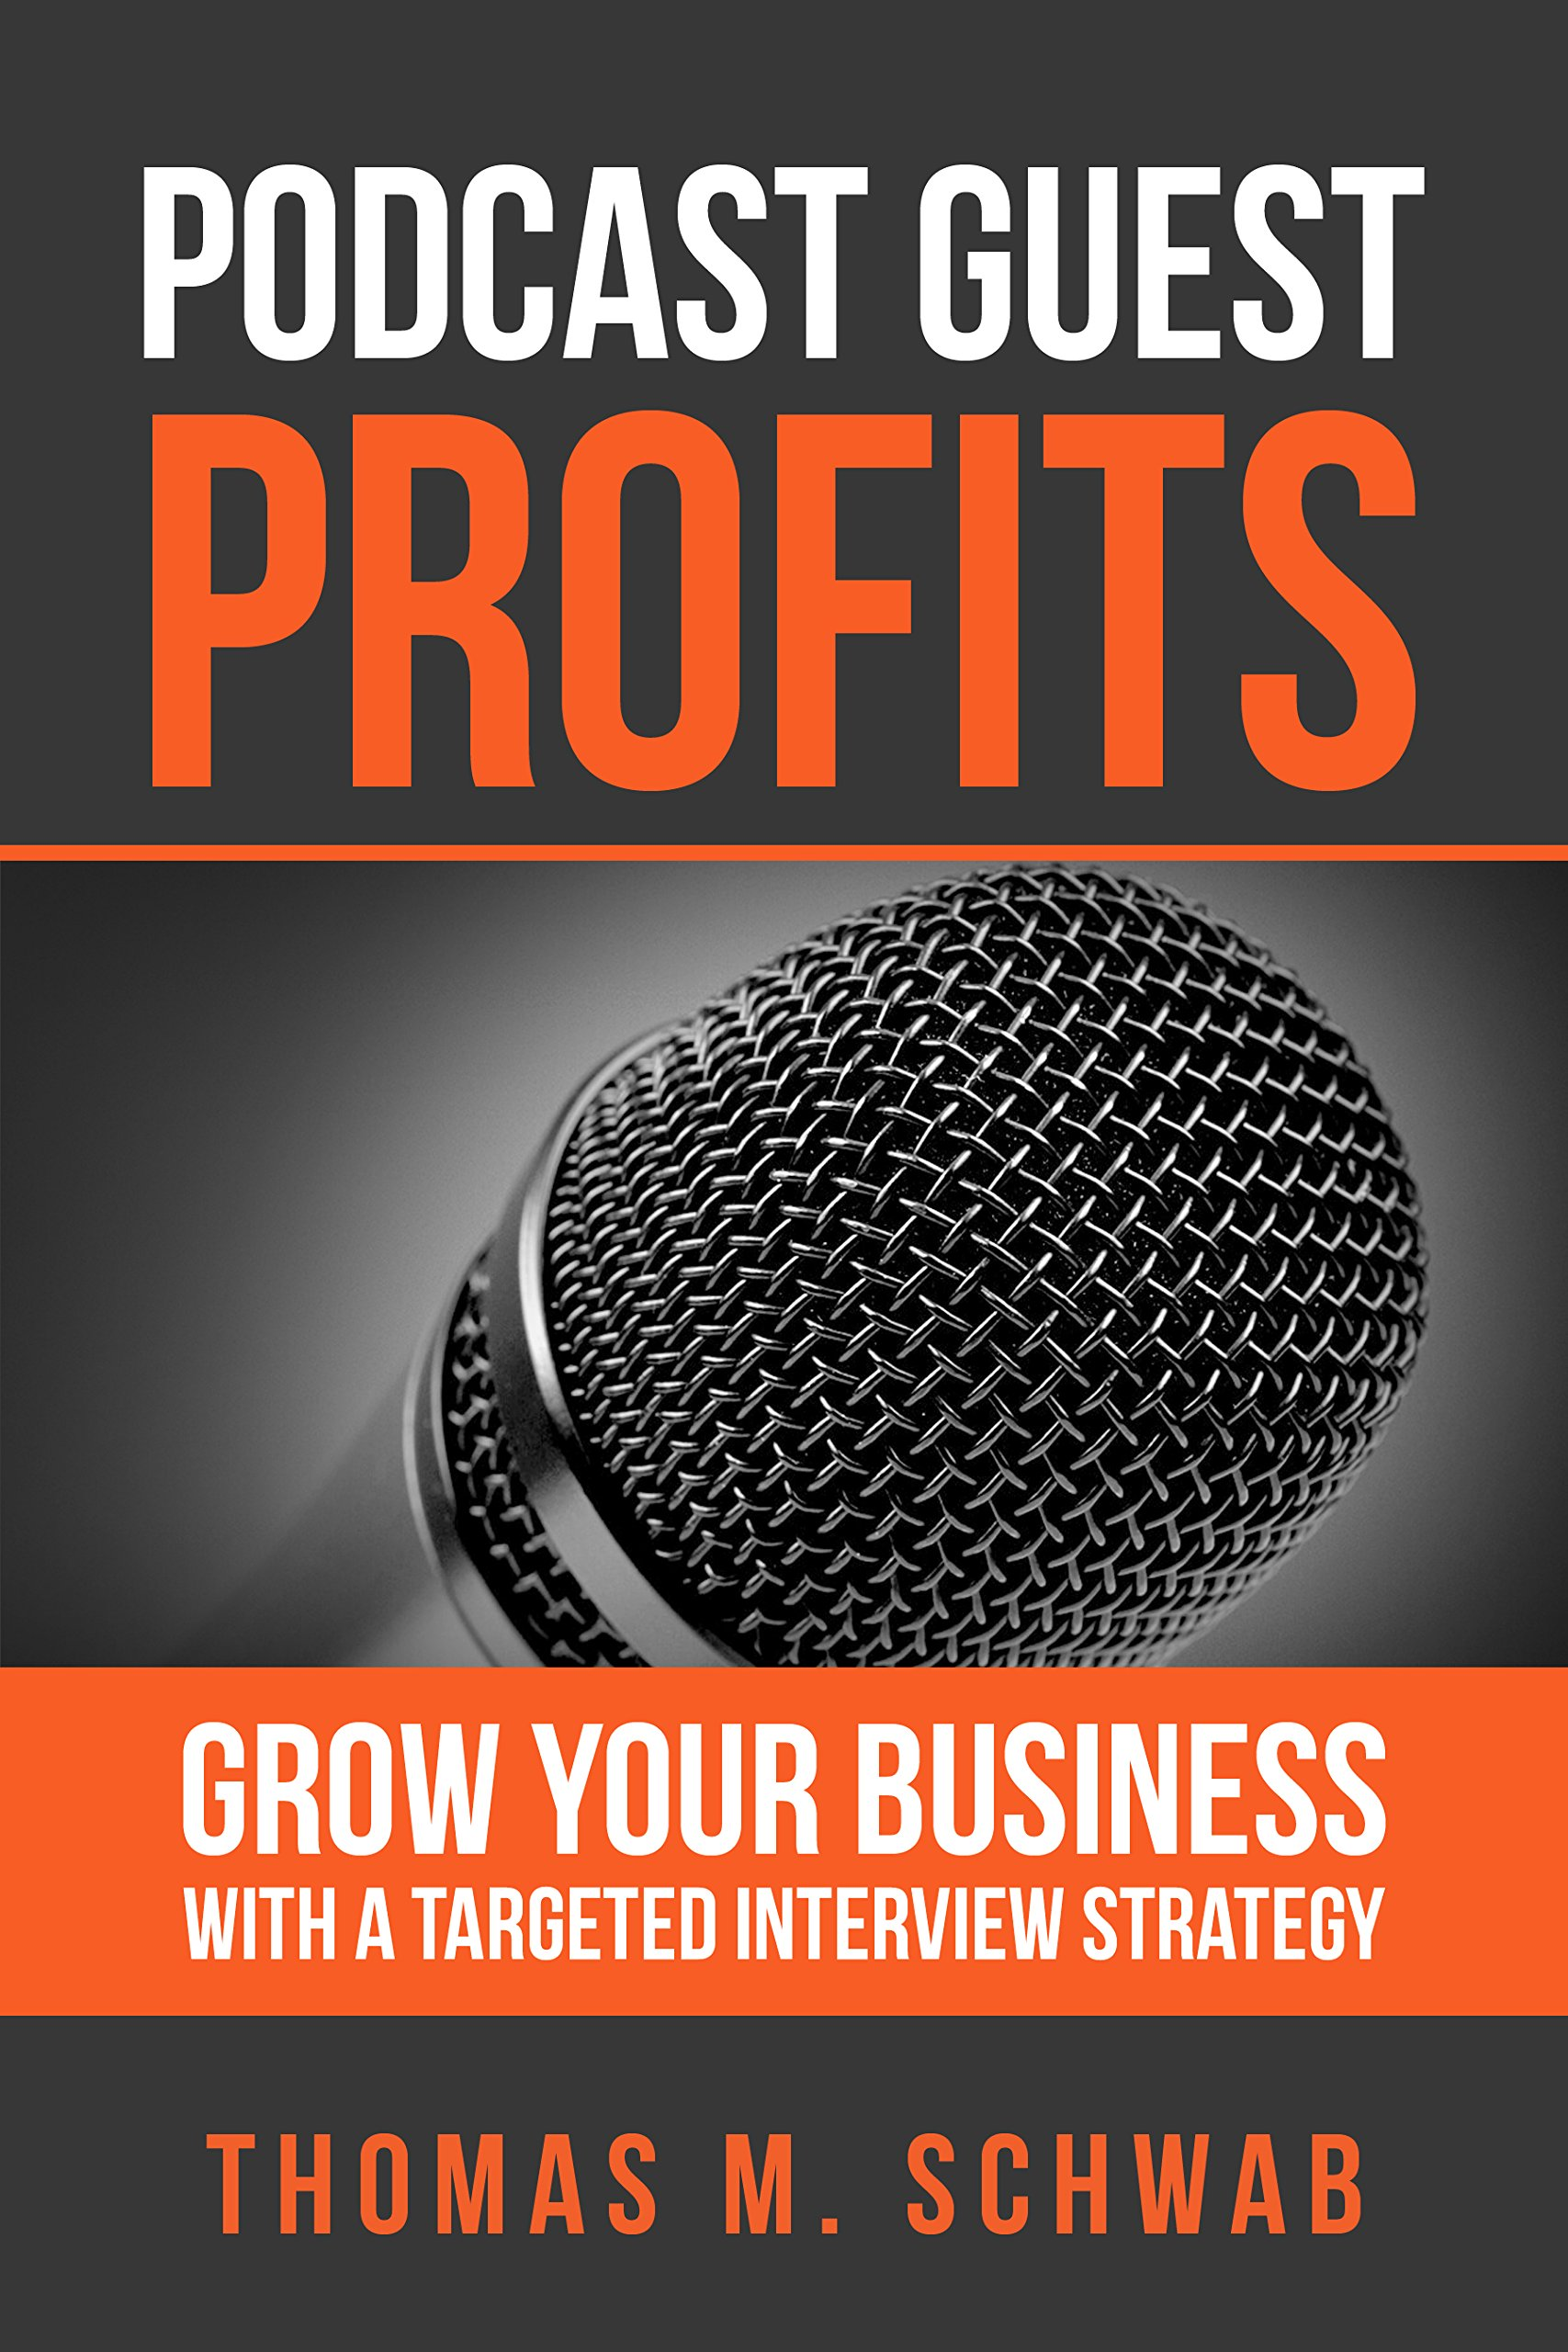 podcast guest profits grow your business a targeted podcast guest profits grow your business a targeted interview strategy thomas m schwab aaron walker 9780998280608 com books